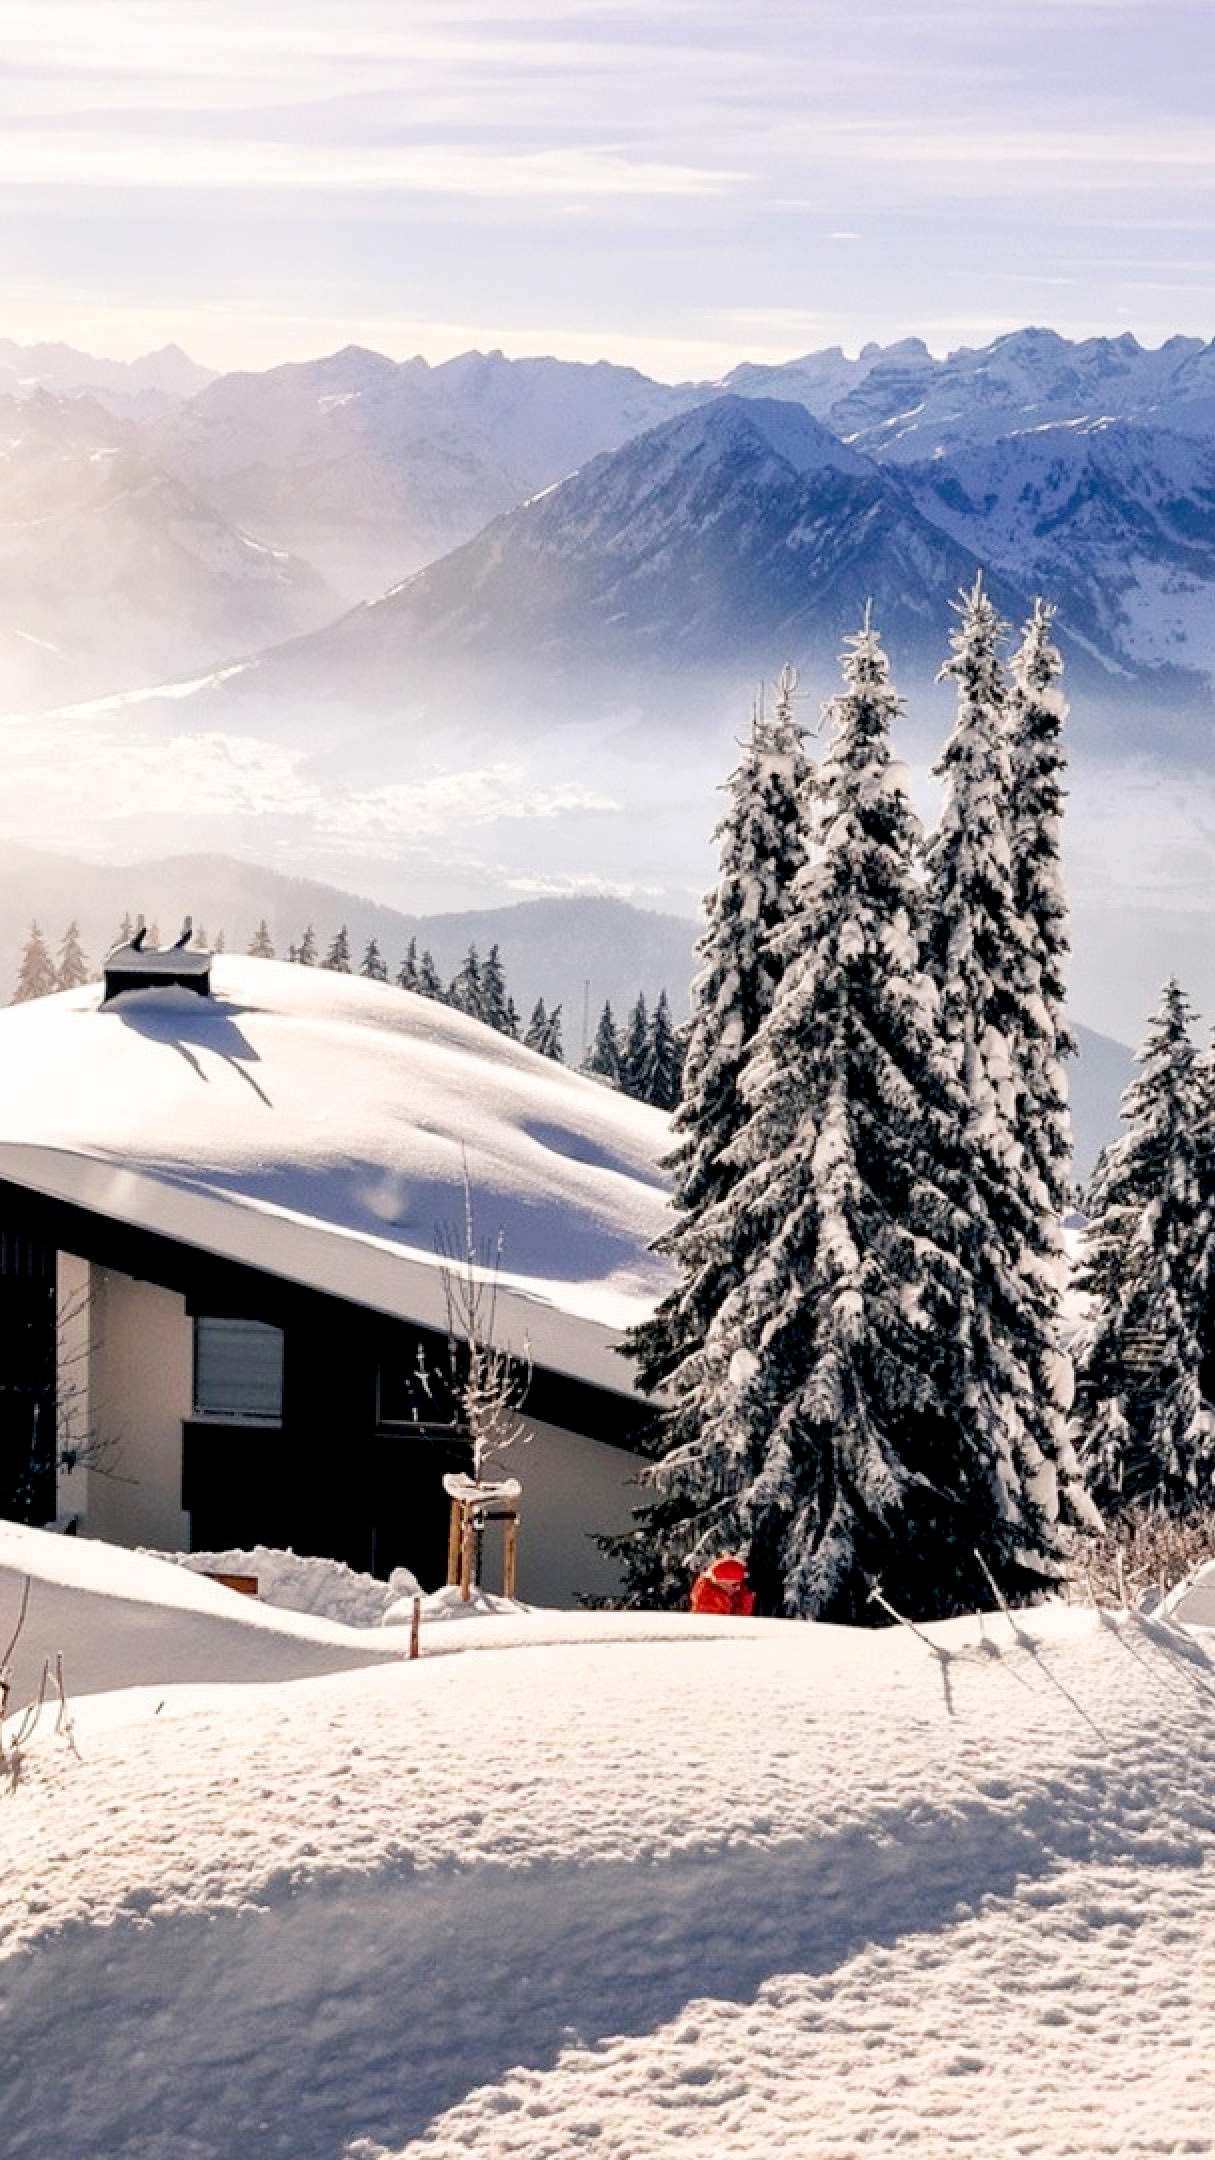 21 Stunning Snow Iphone Wallpapers Templatefor